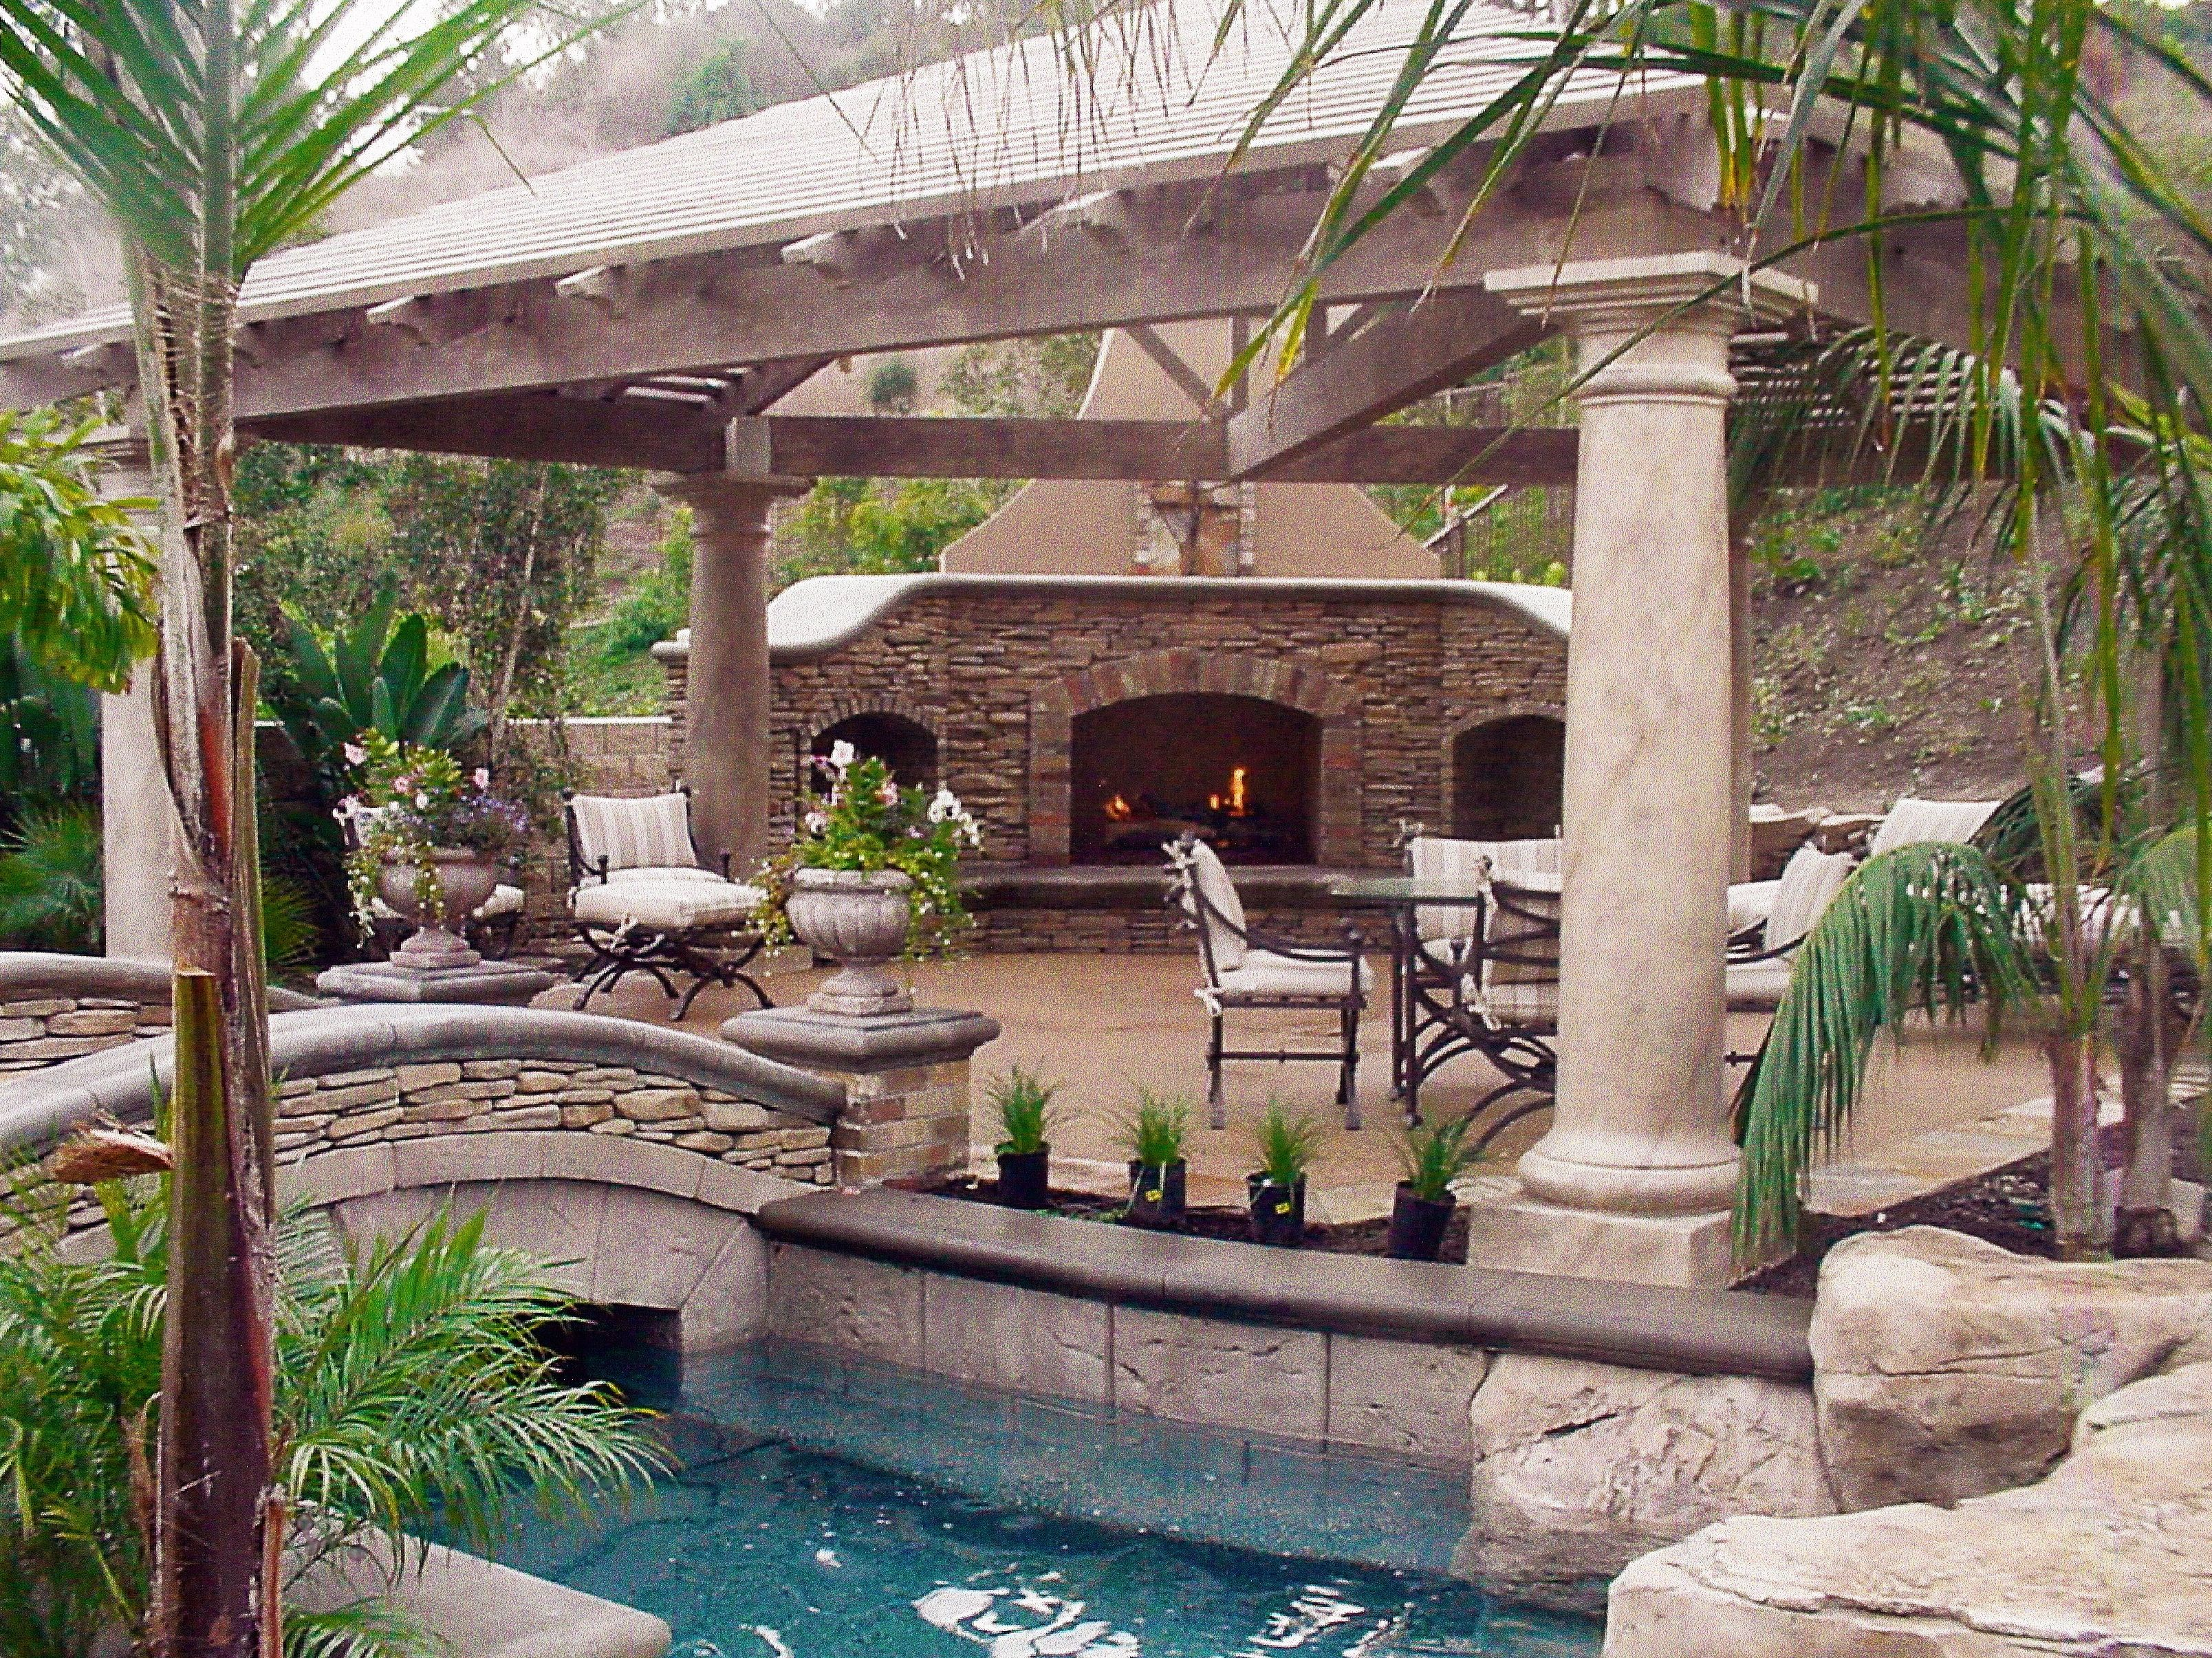 Backyard oasis ideas joy studio design gallery best design for Backyard patio design ideas